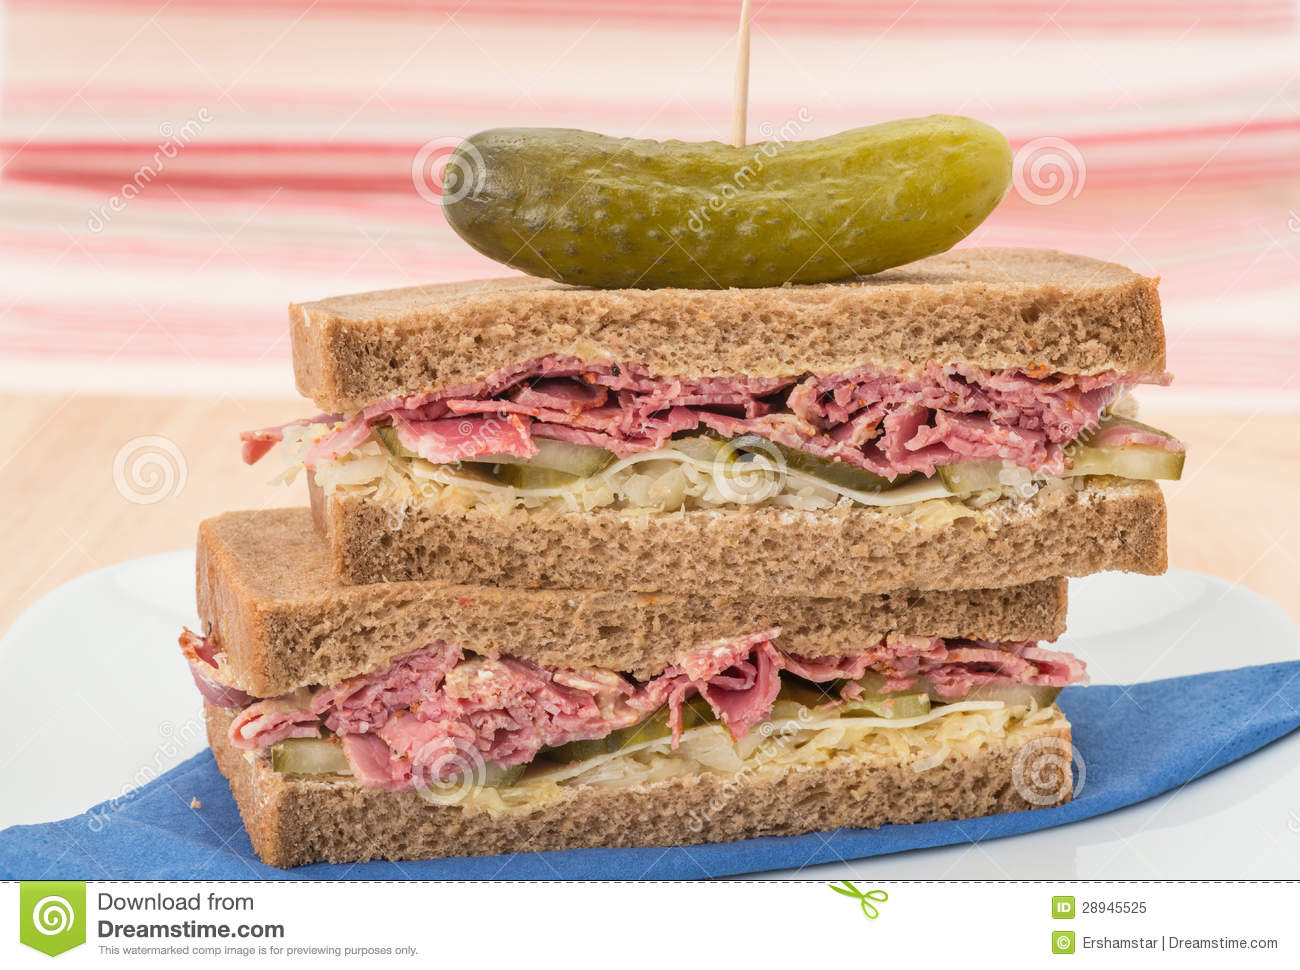 New York deli pastrami sandwich on rye bread. This sandwich has ...